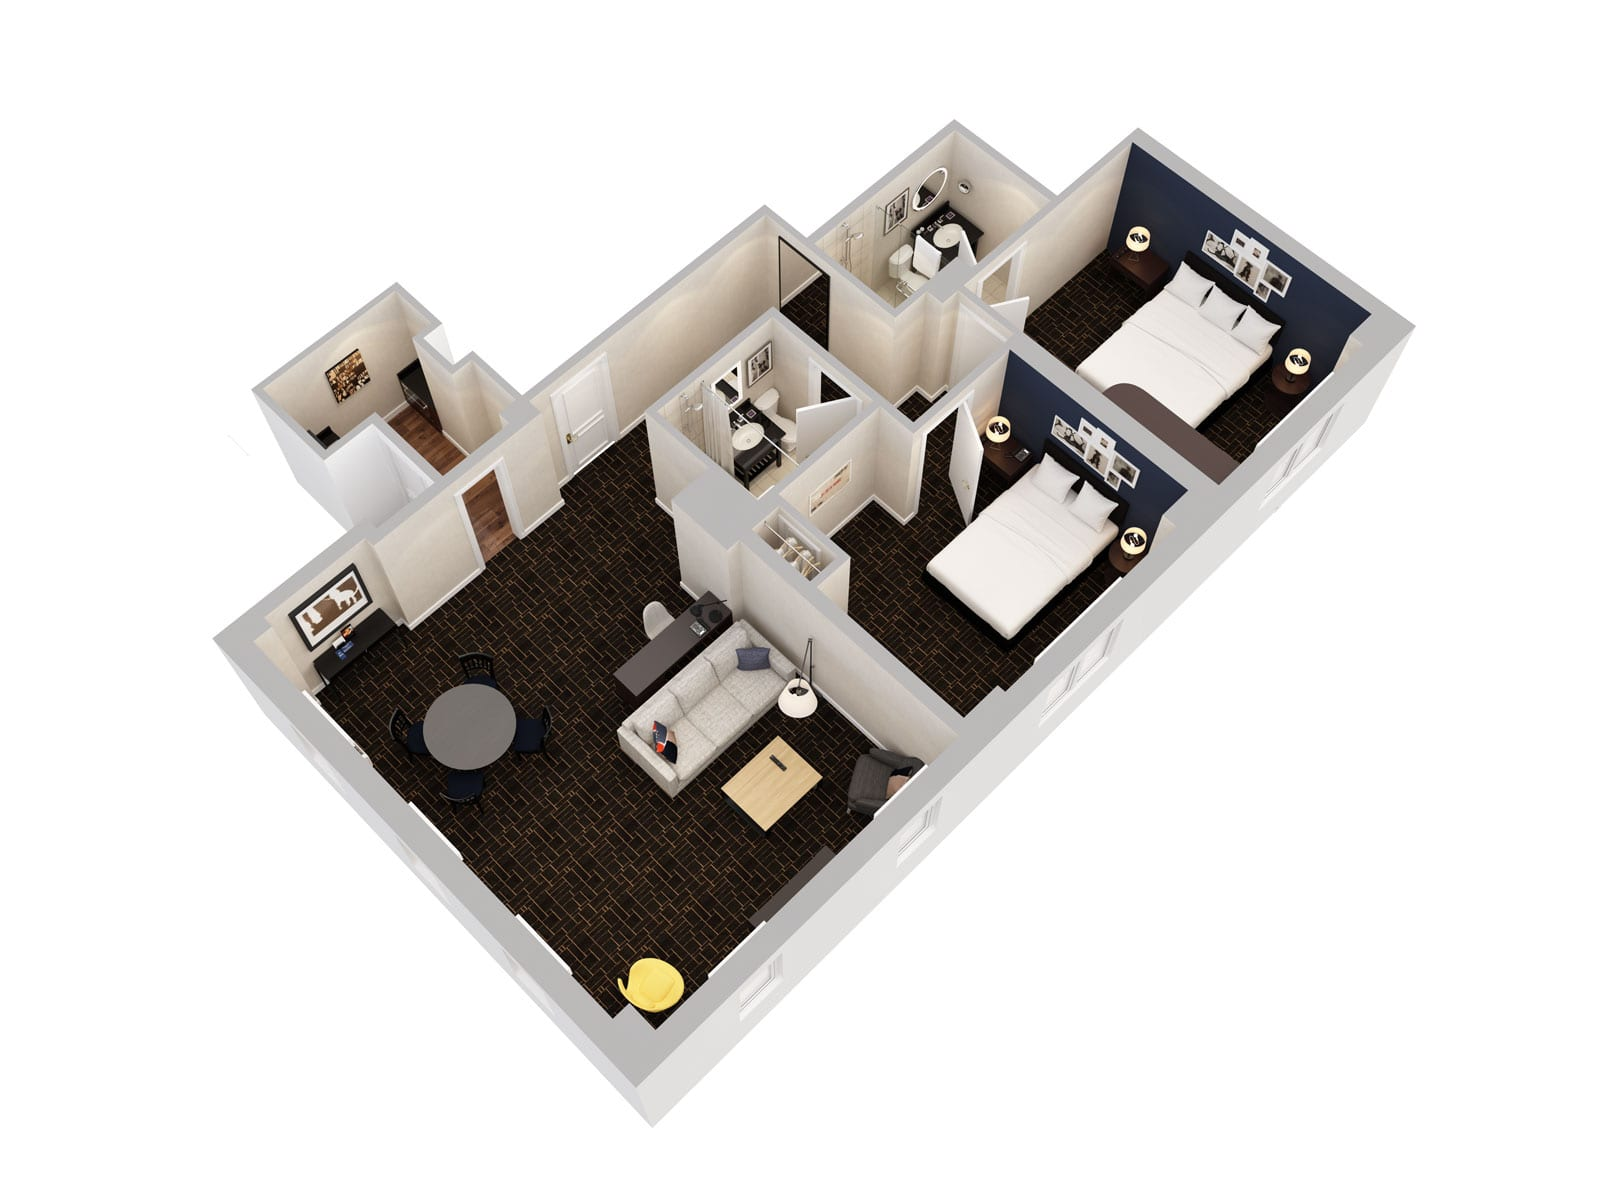 Shelburne Hotel & Suites 3-D Rendering Of Two Bedroom Apartment